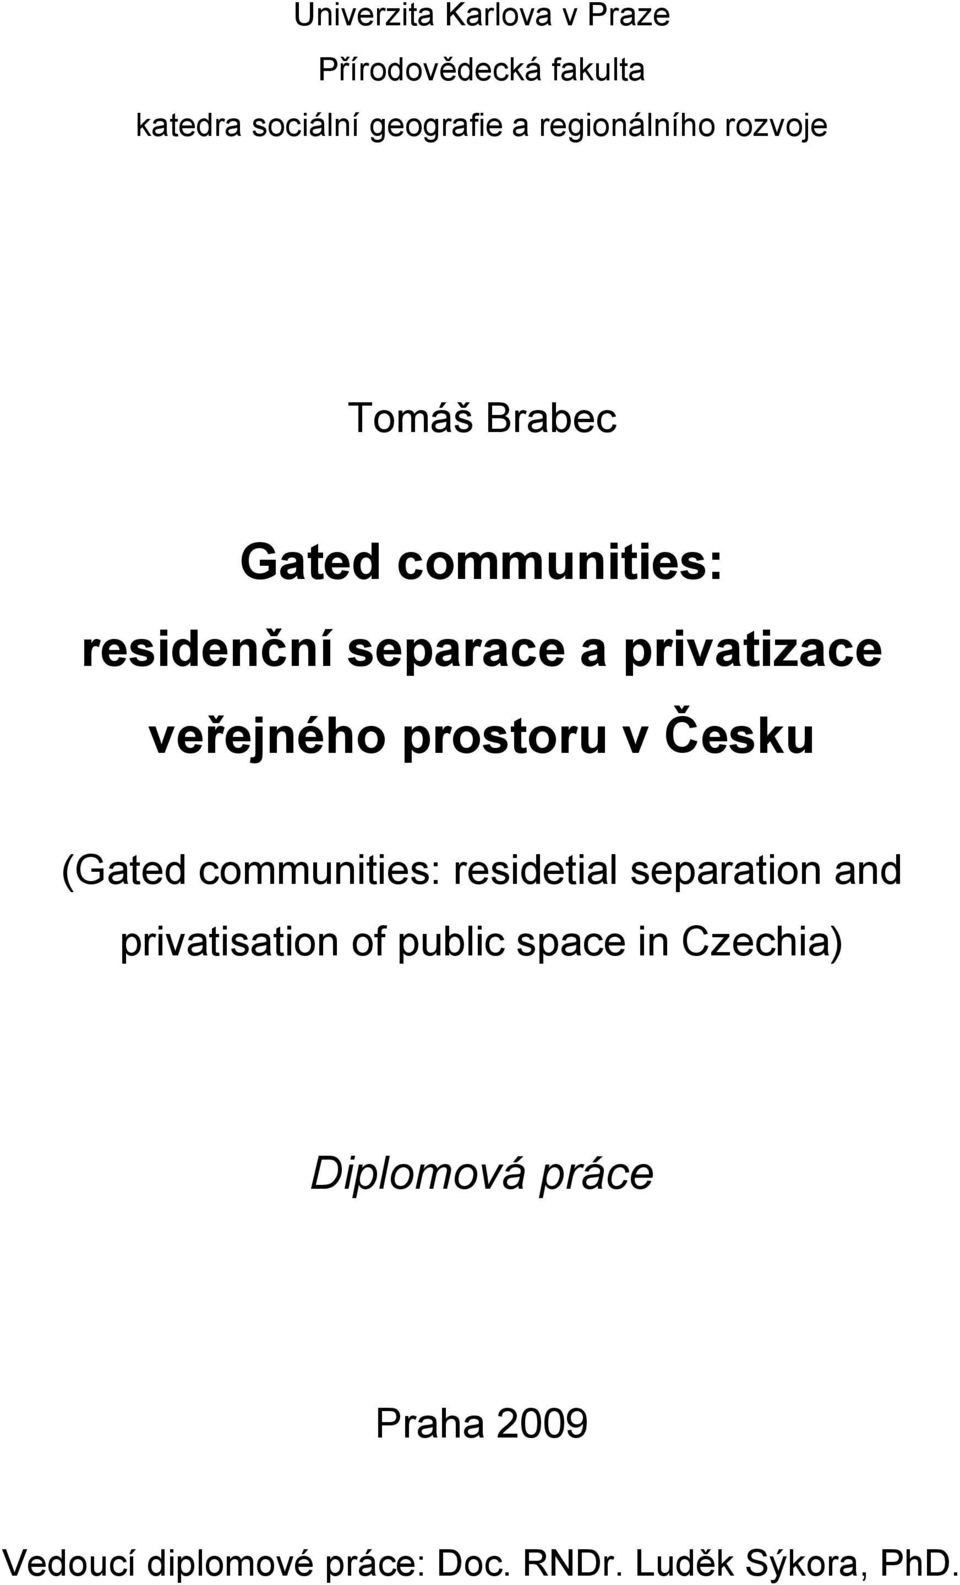 veřejného prostoru v Česku (Gated communities: residetial separation and privatisation of